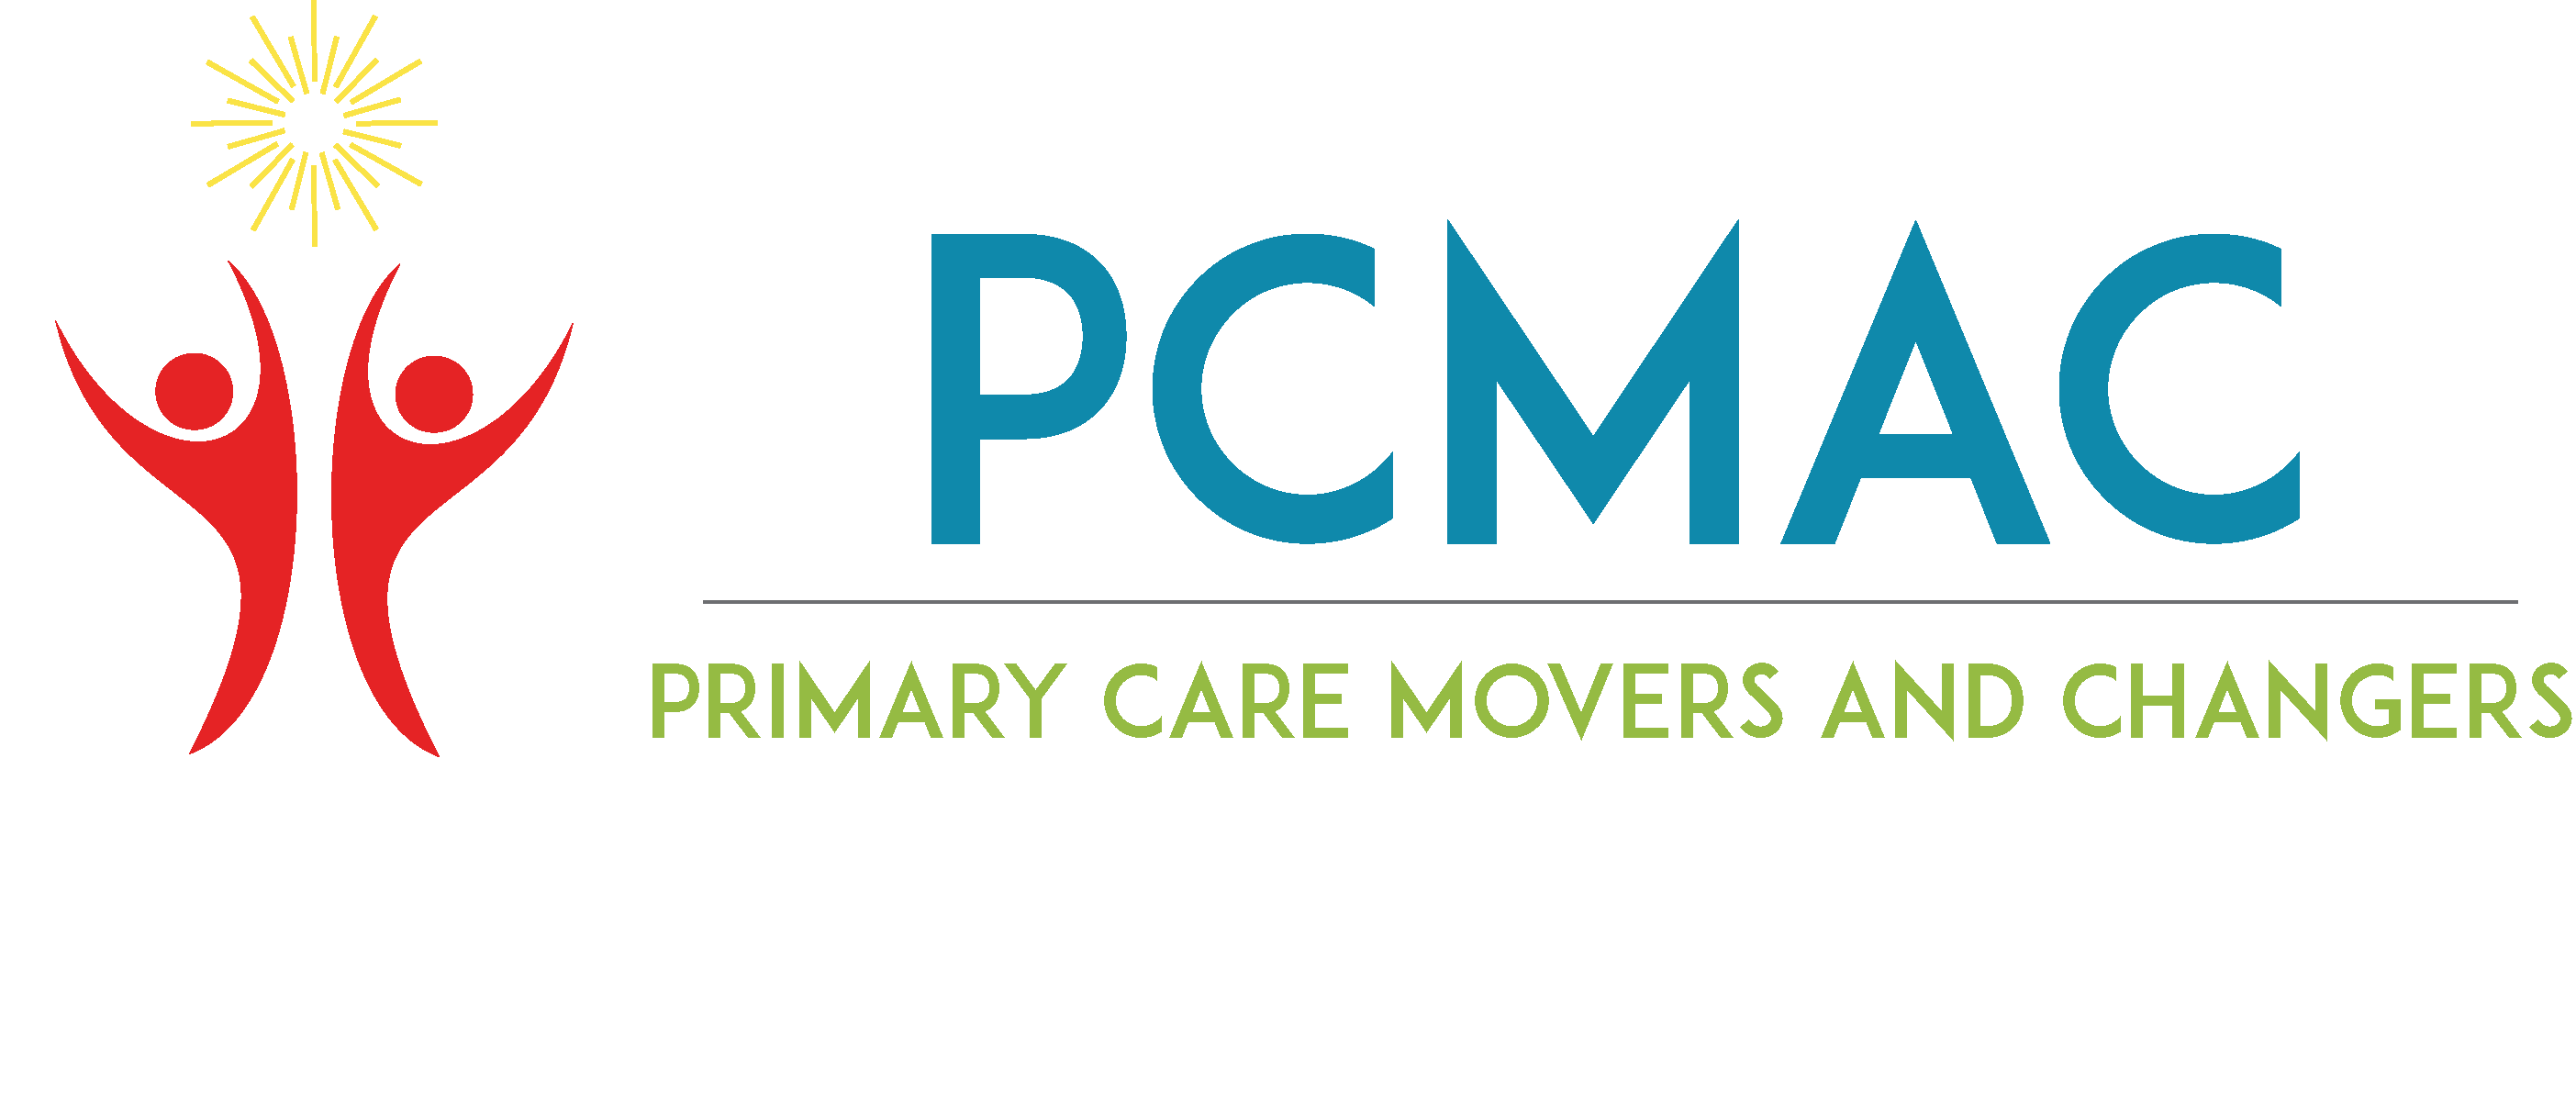 Primary Care Movers and Changers (PCMAC)